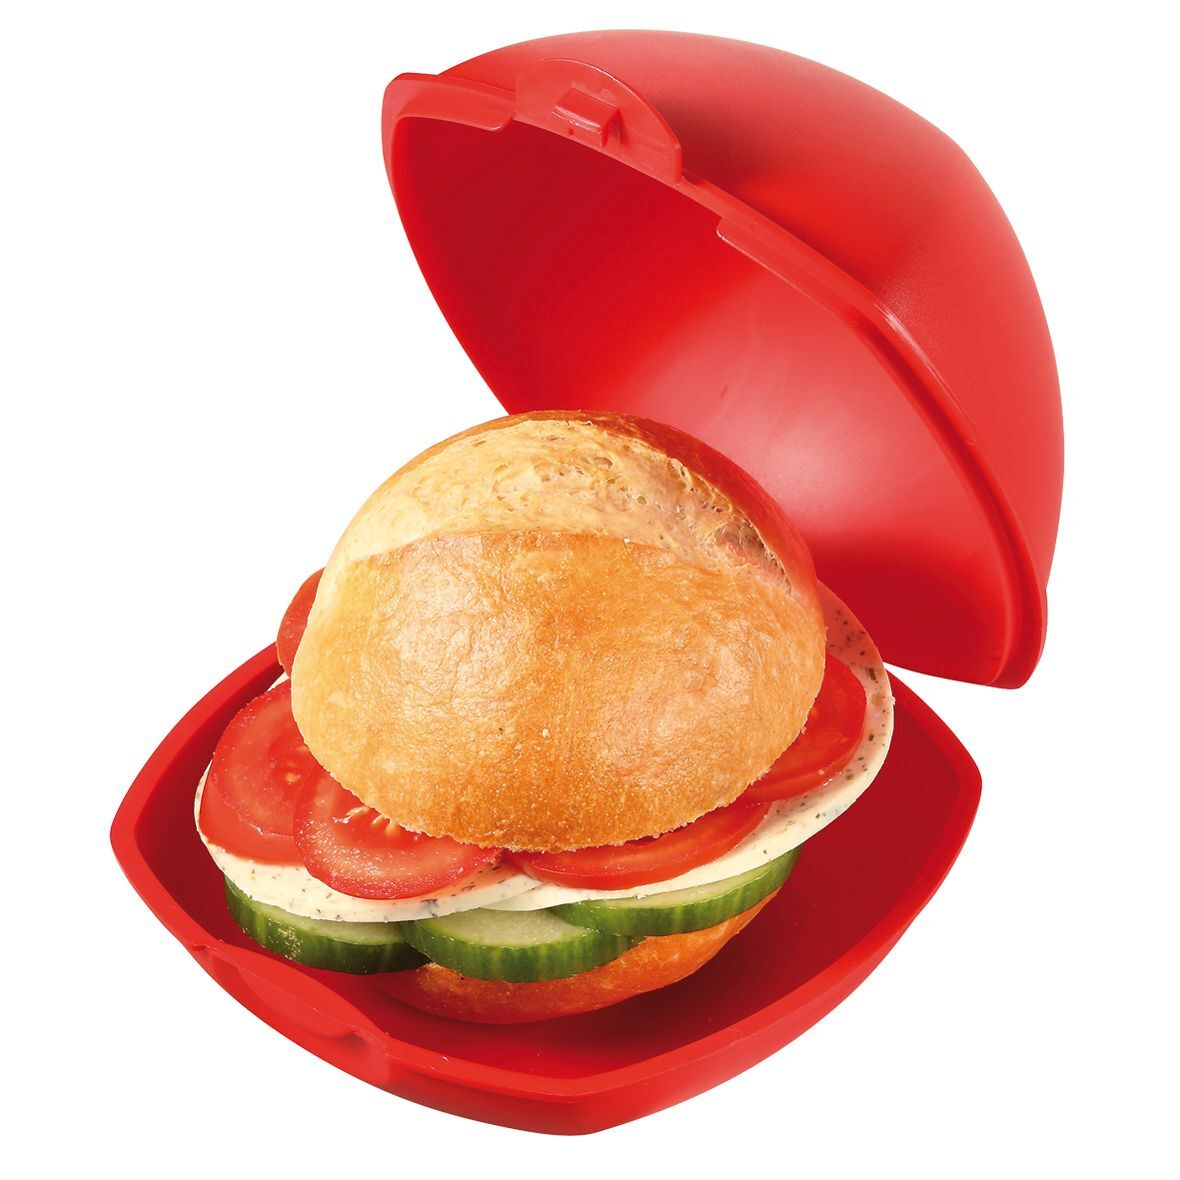 Lunch Box for Bread Rolls